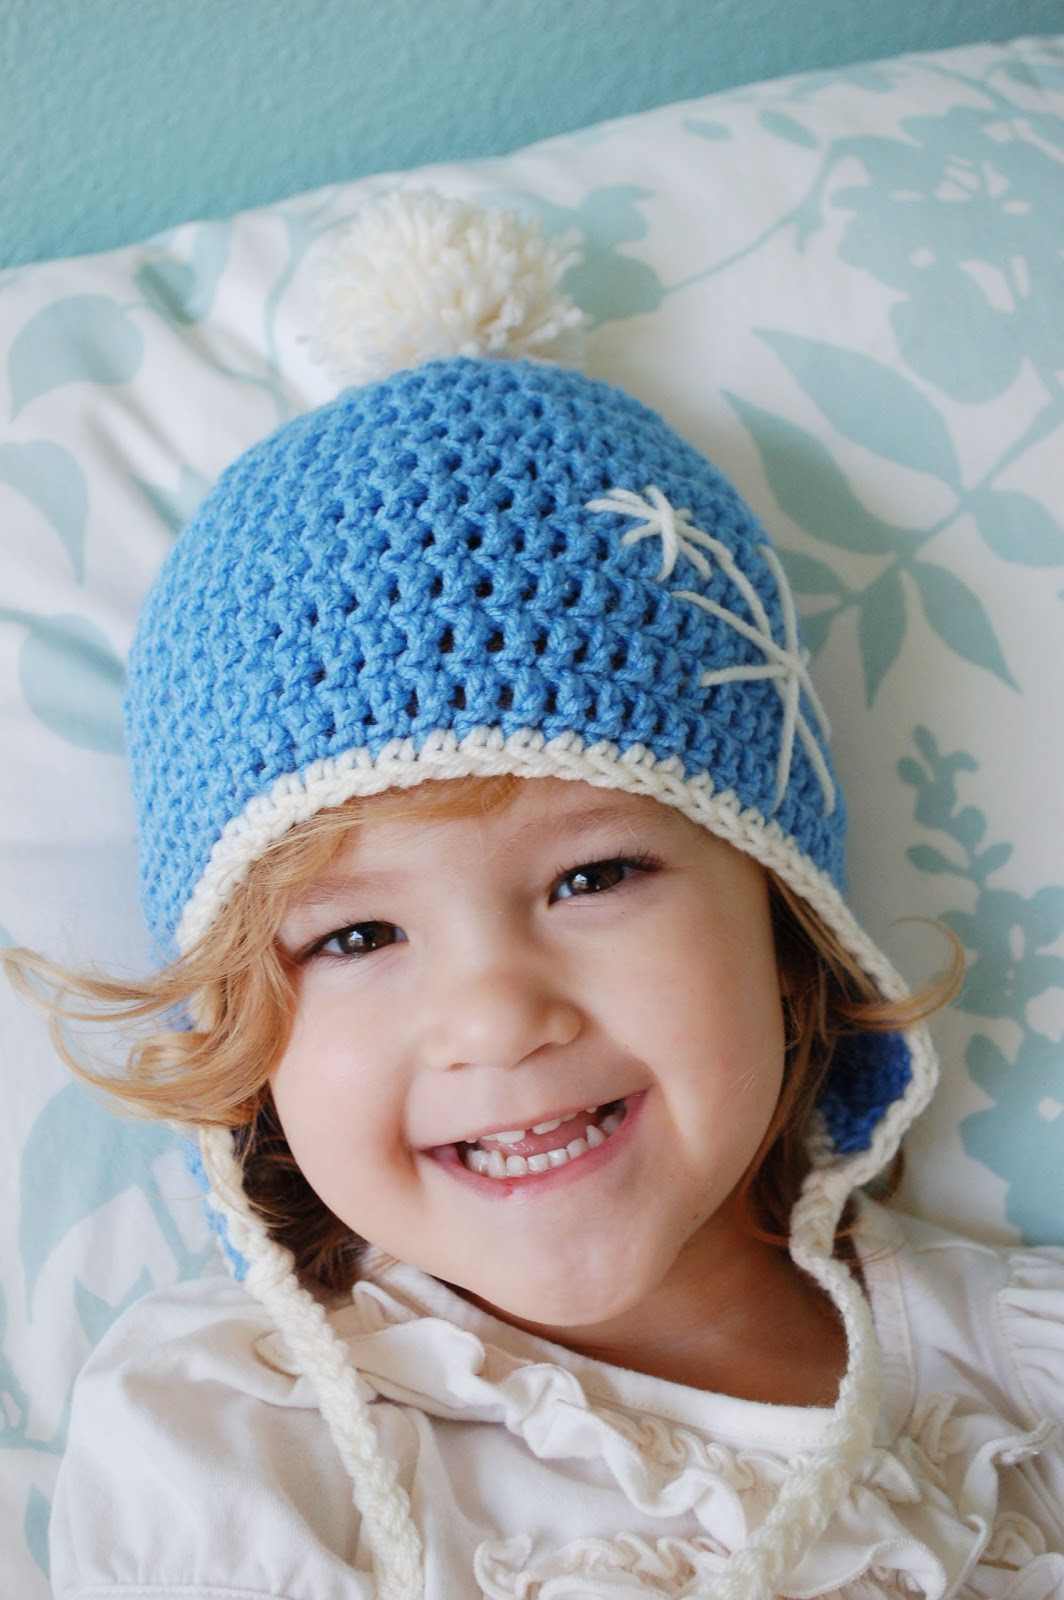 Best Of Free Crochet Patterns for Baby Hats with Ear Flaps Baby Hat with Ear Flaps Of Perfect 41 Pics Baby Hat with Ear Flaps